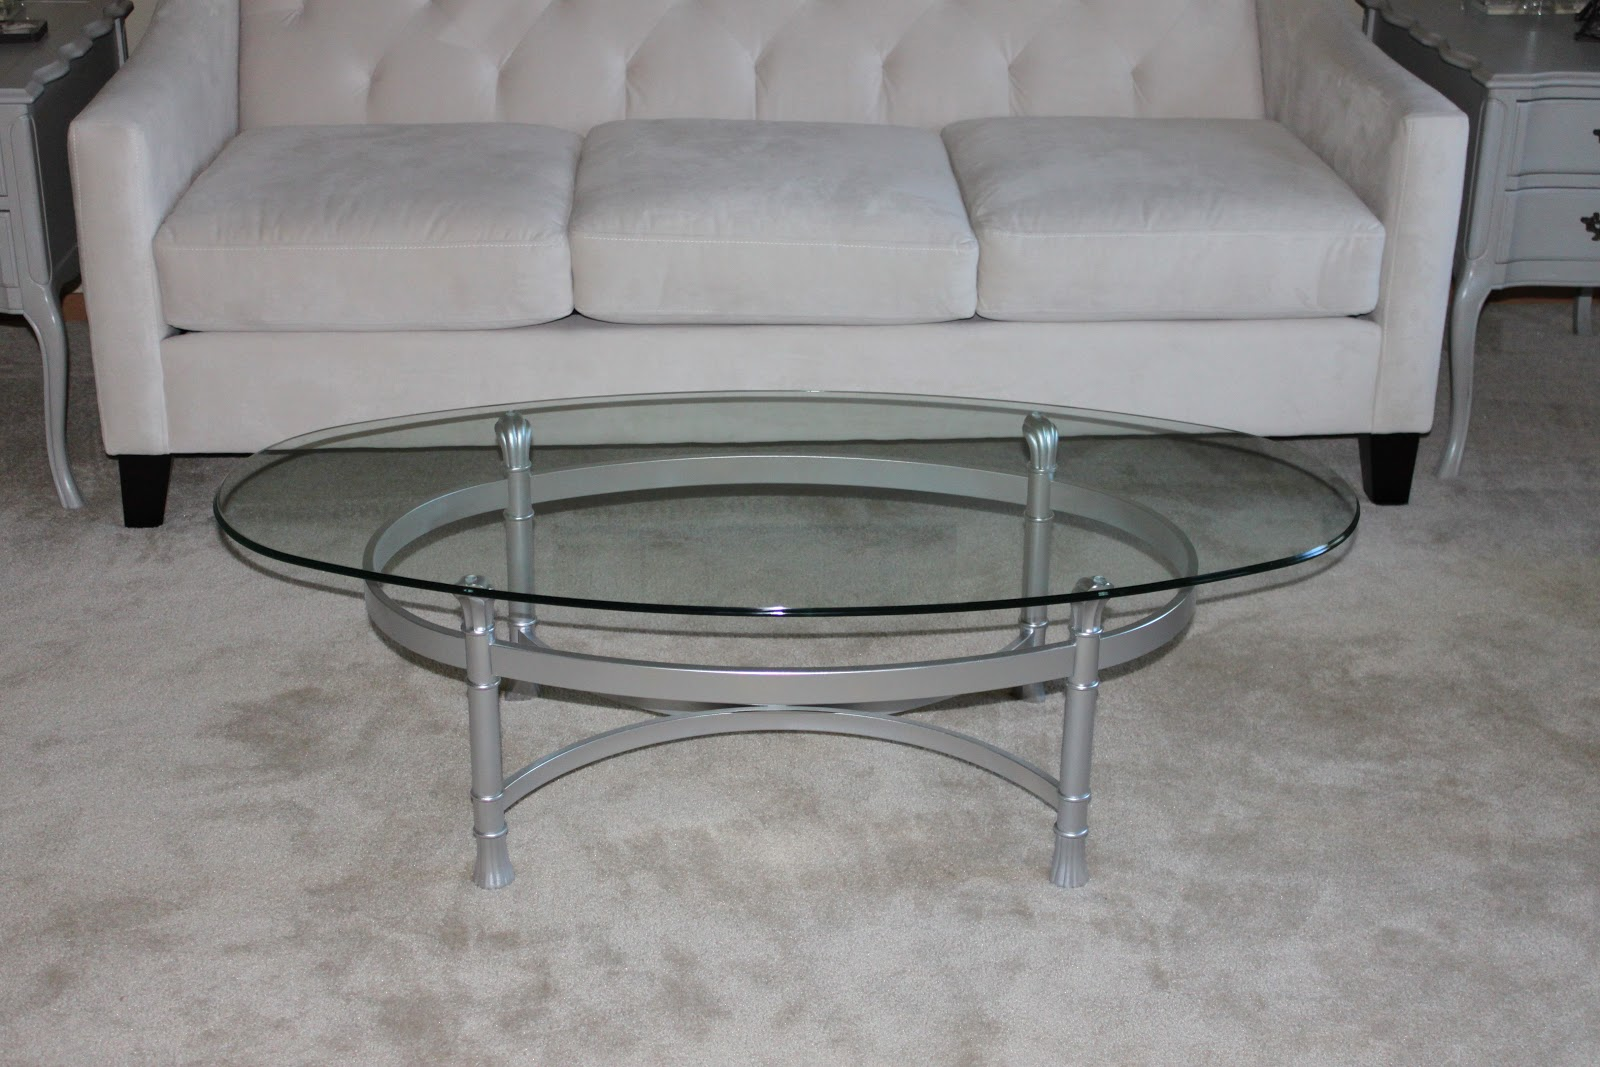 Diy Glass Top Coffee Tables Diy: coffee table makeover at